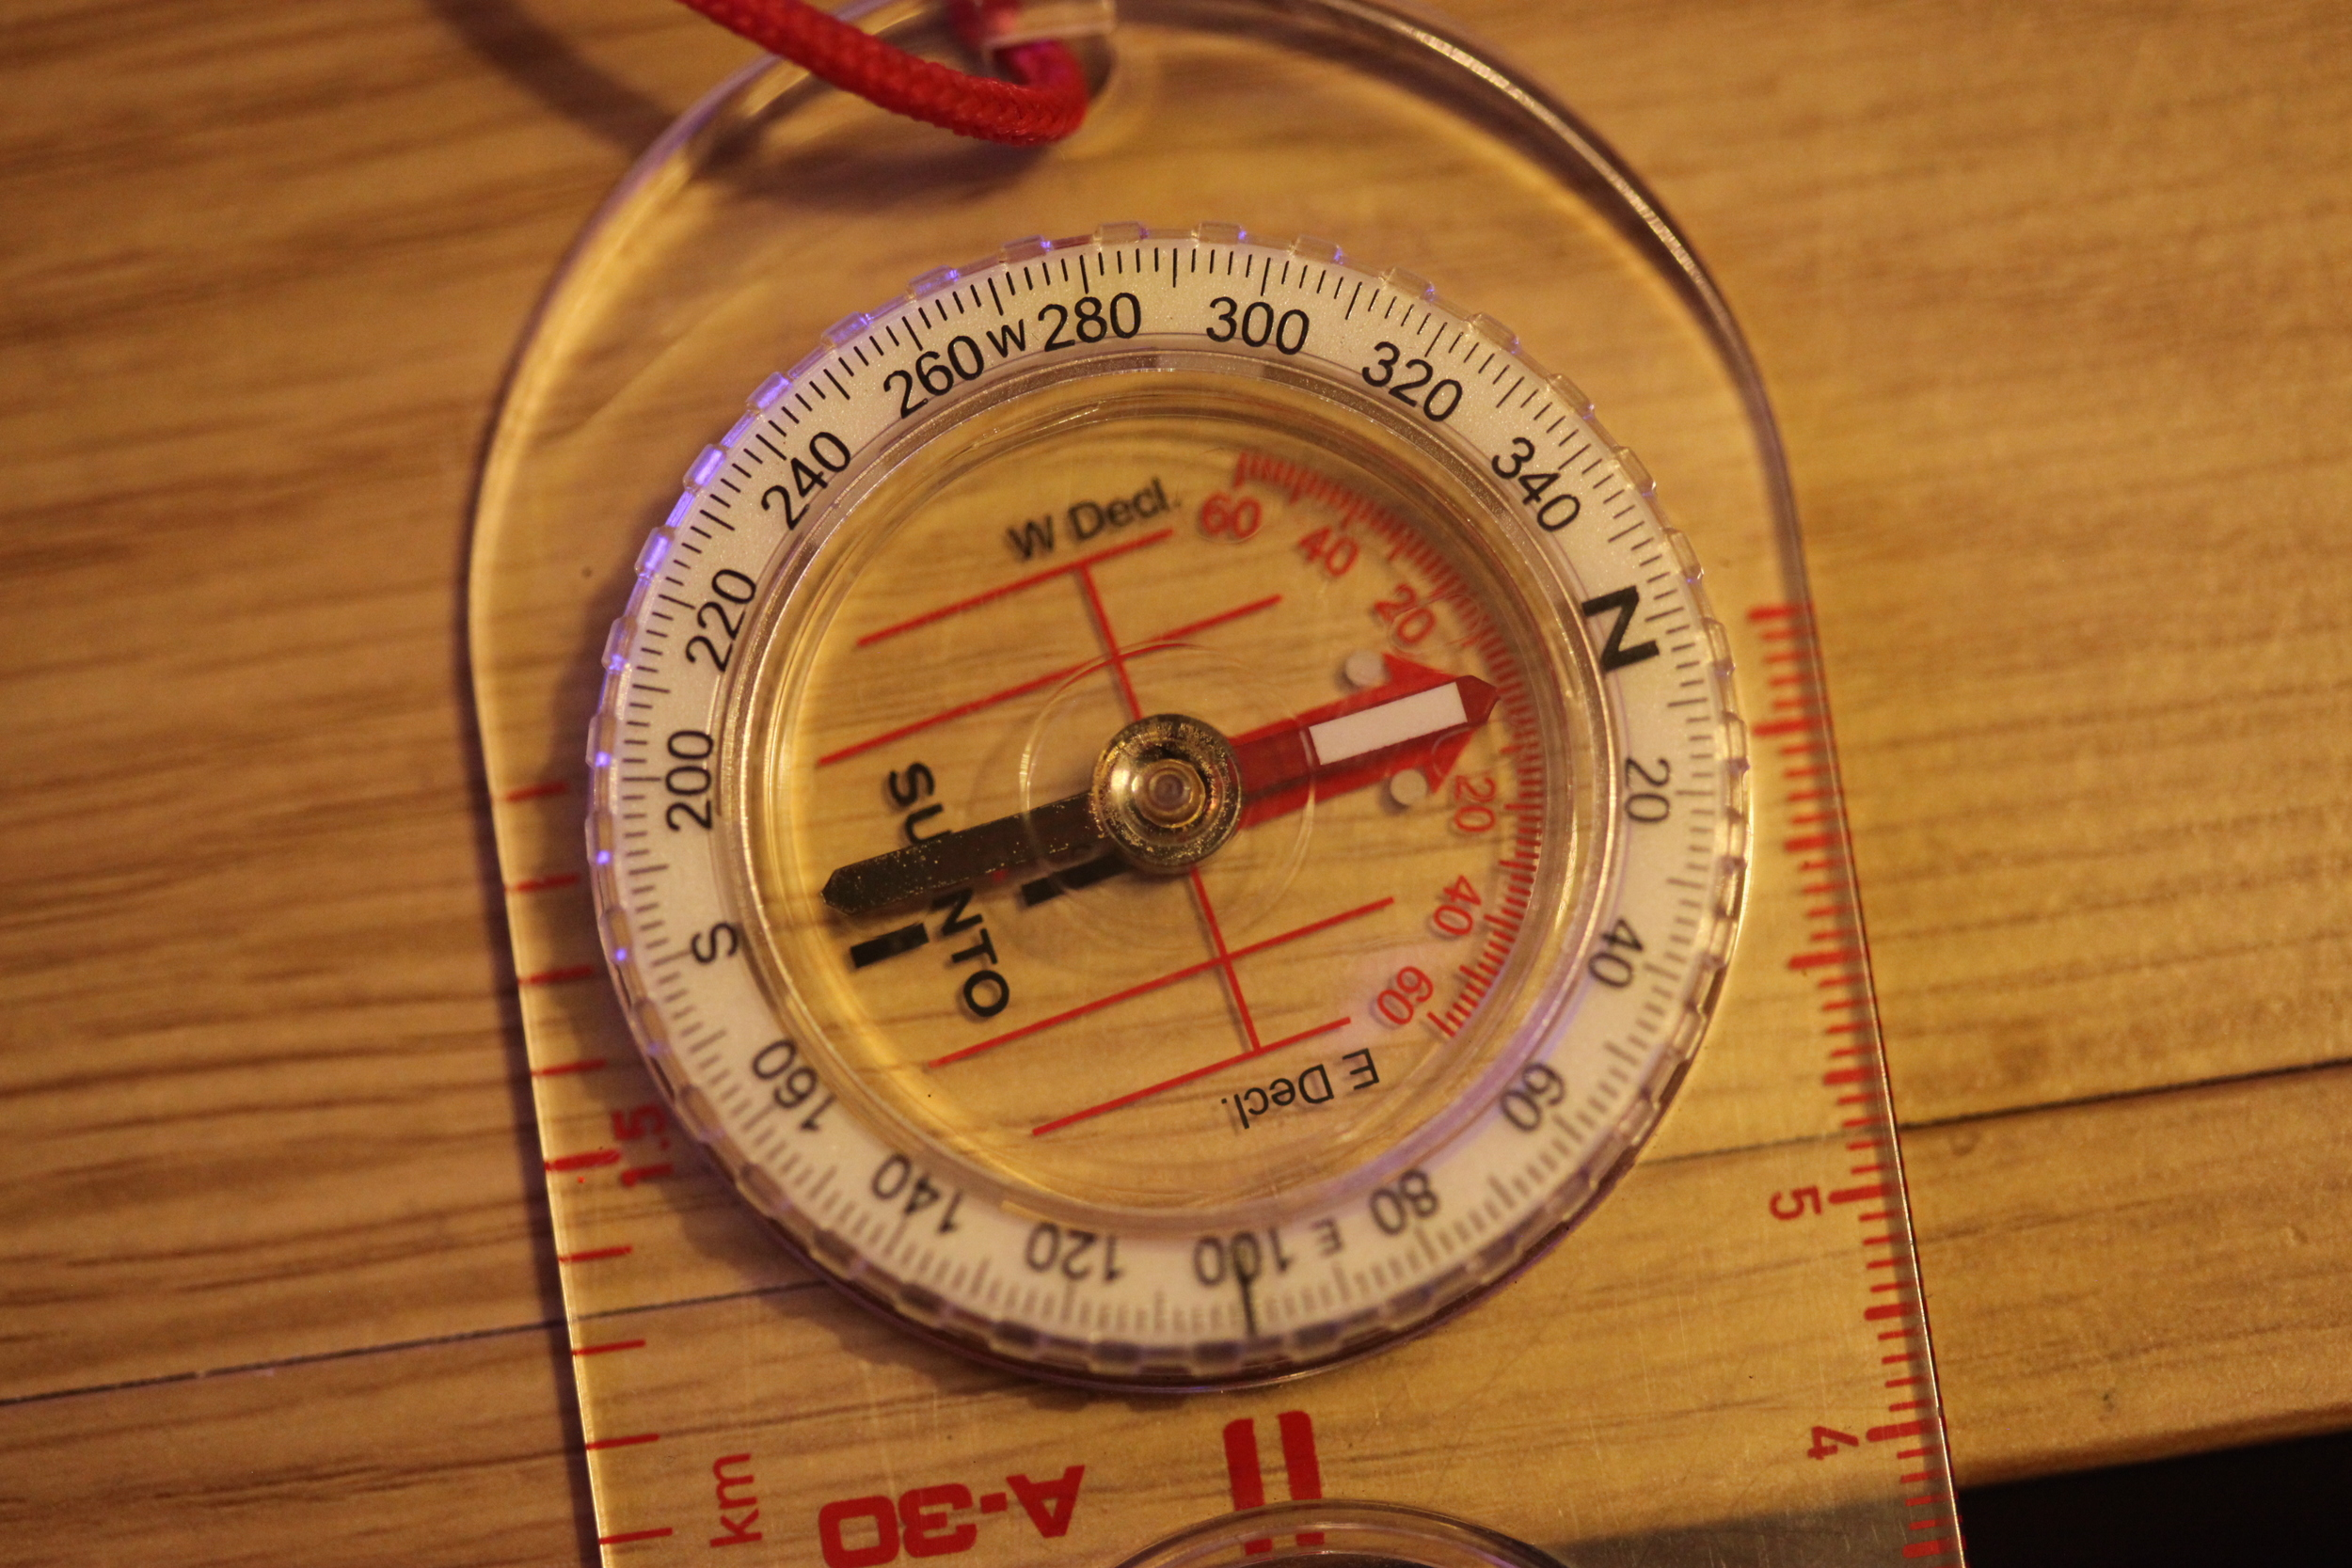 Orientate your compass (spin round) until the two 'North' arrows line up.